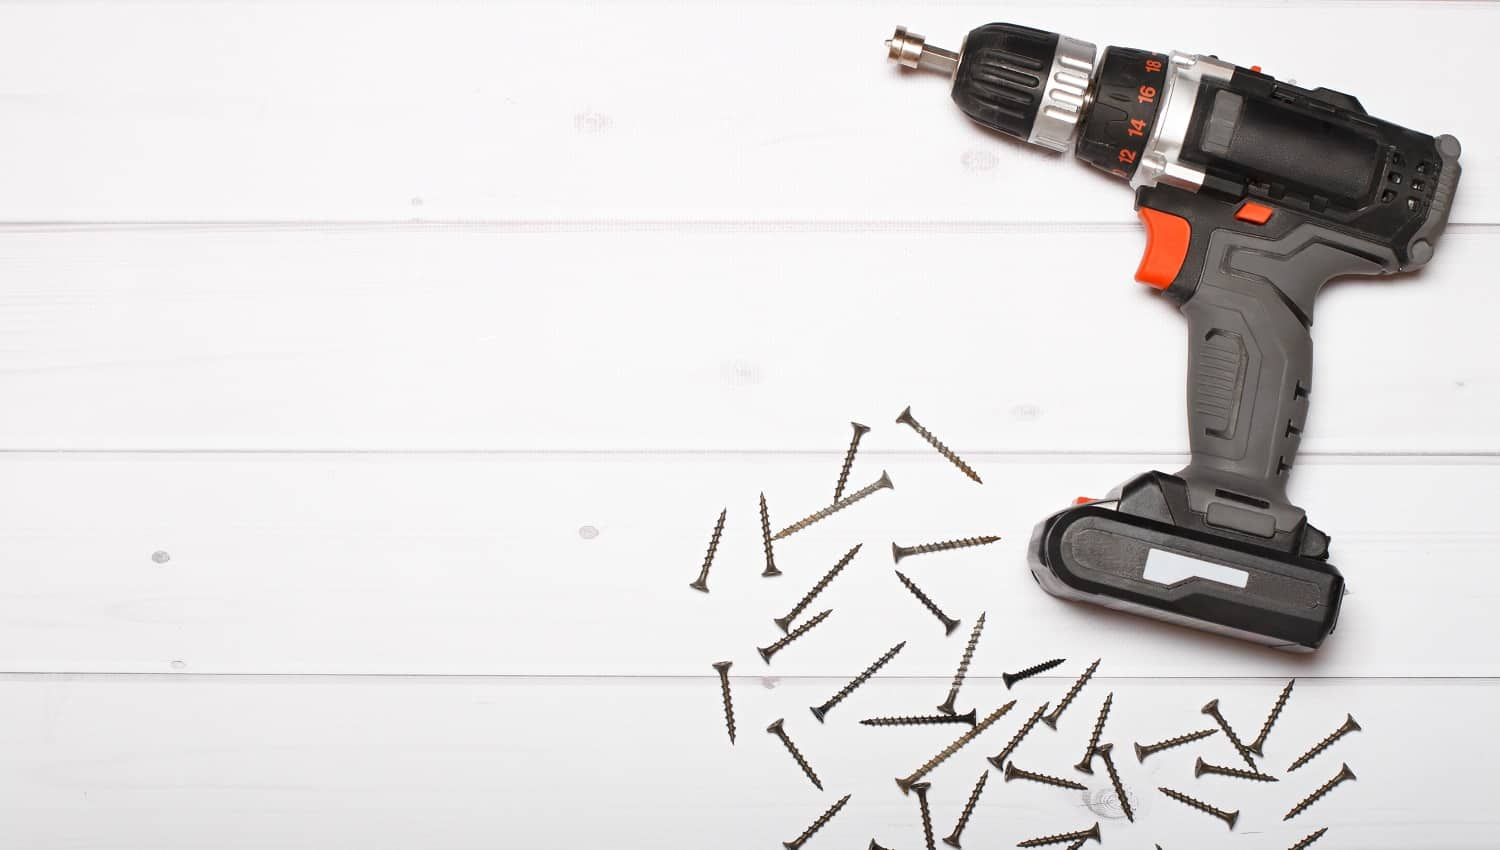 Compact cordless screwdriver isolated on a white background